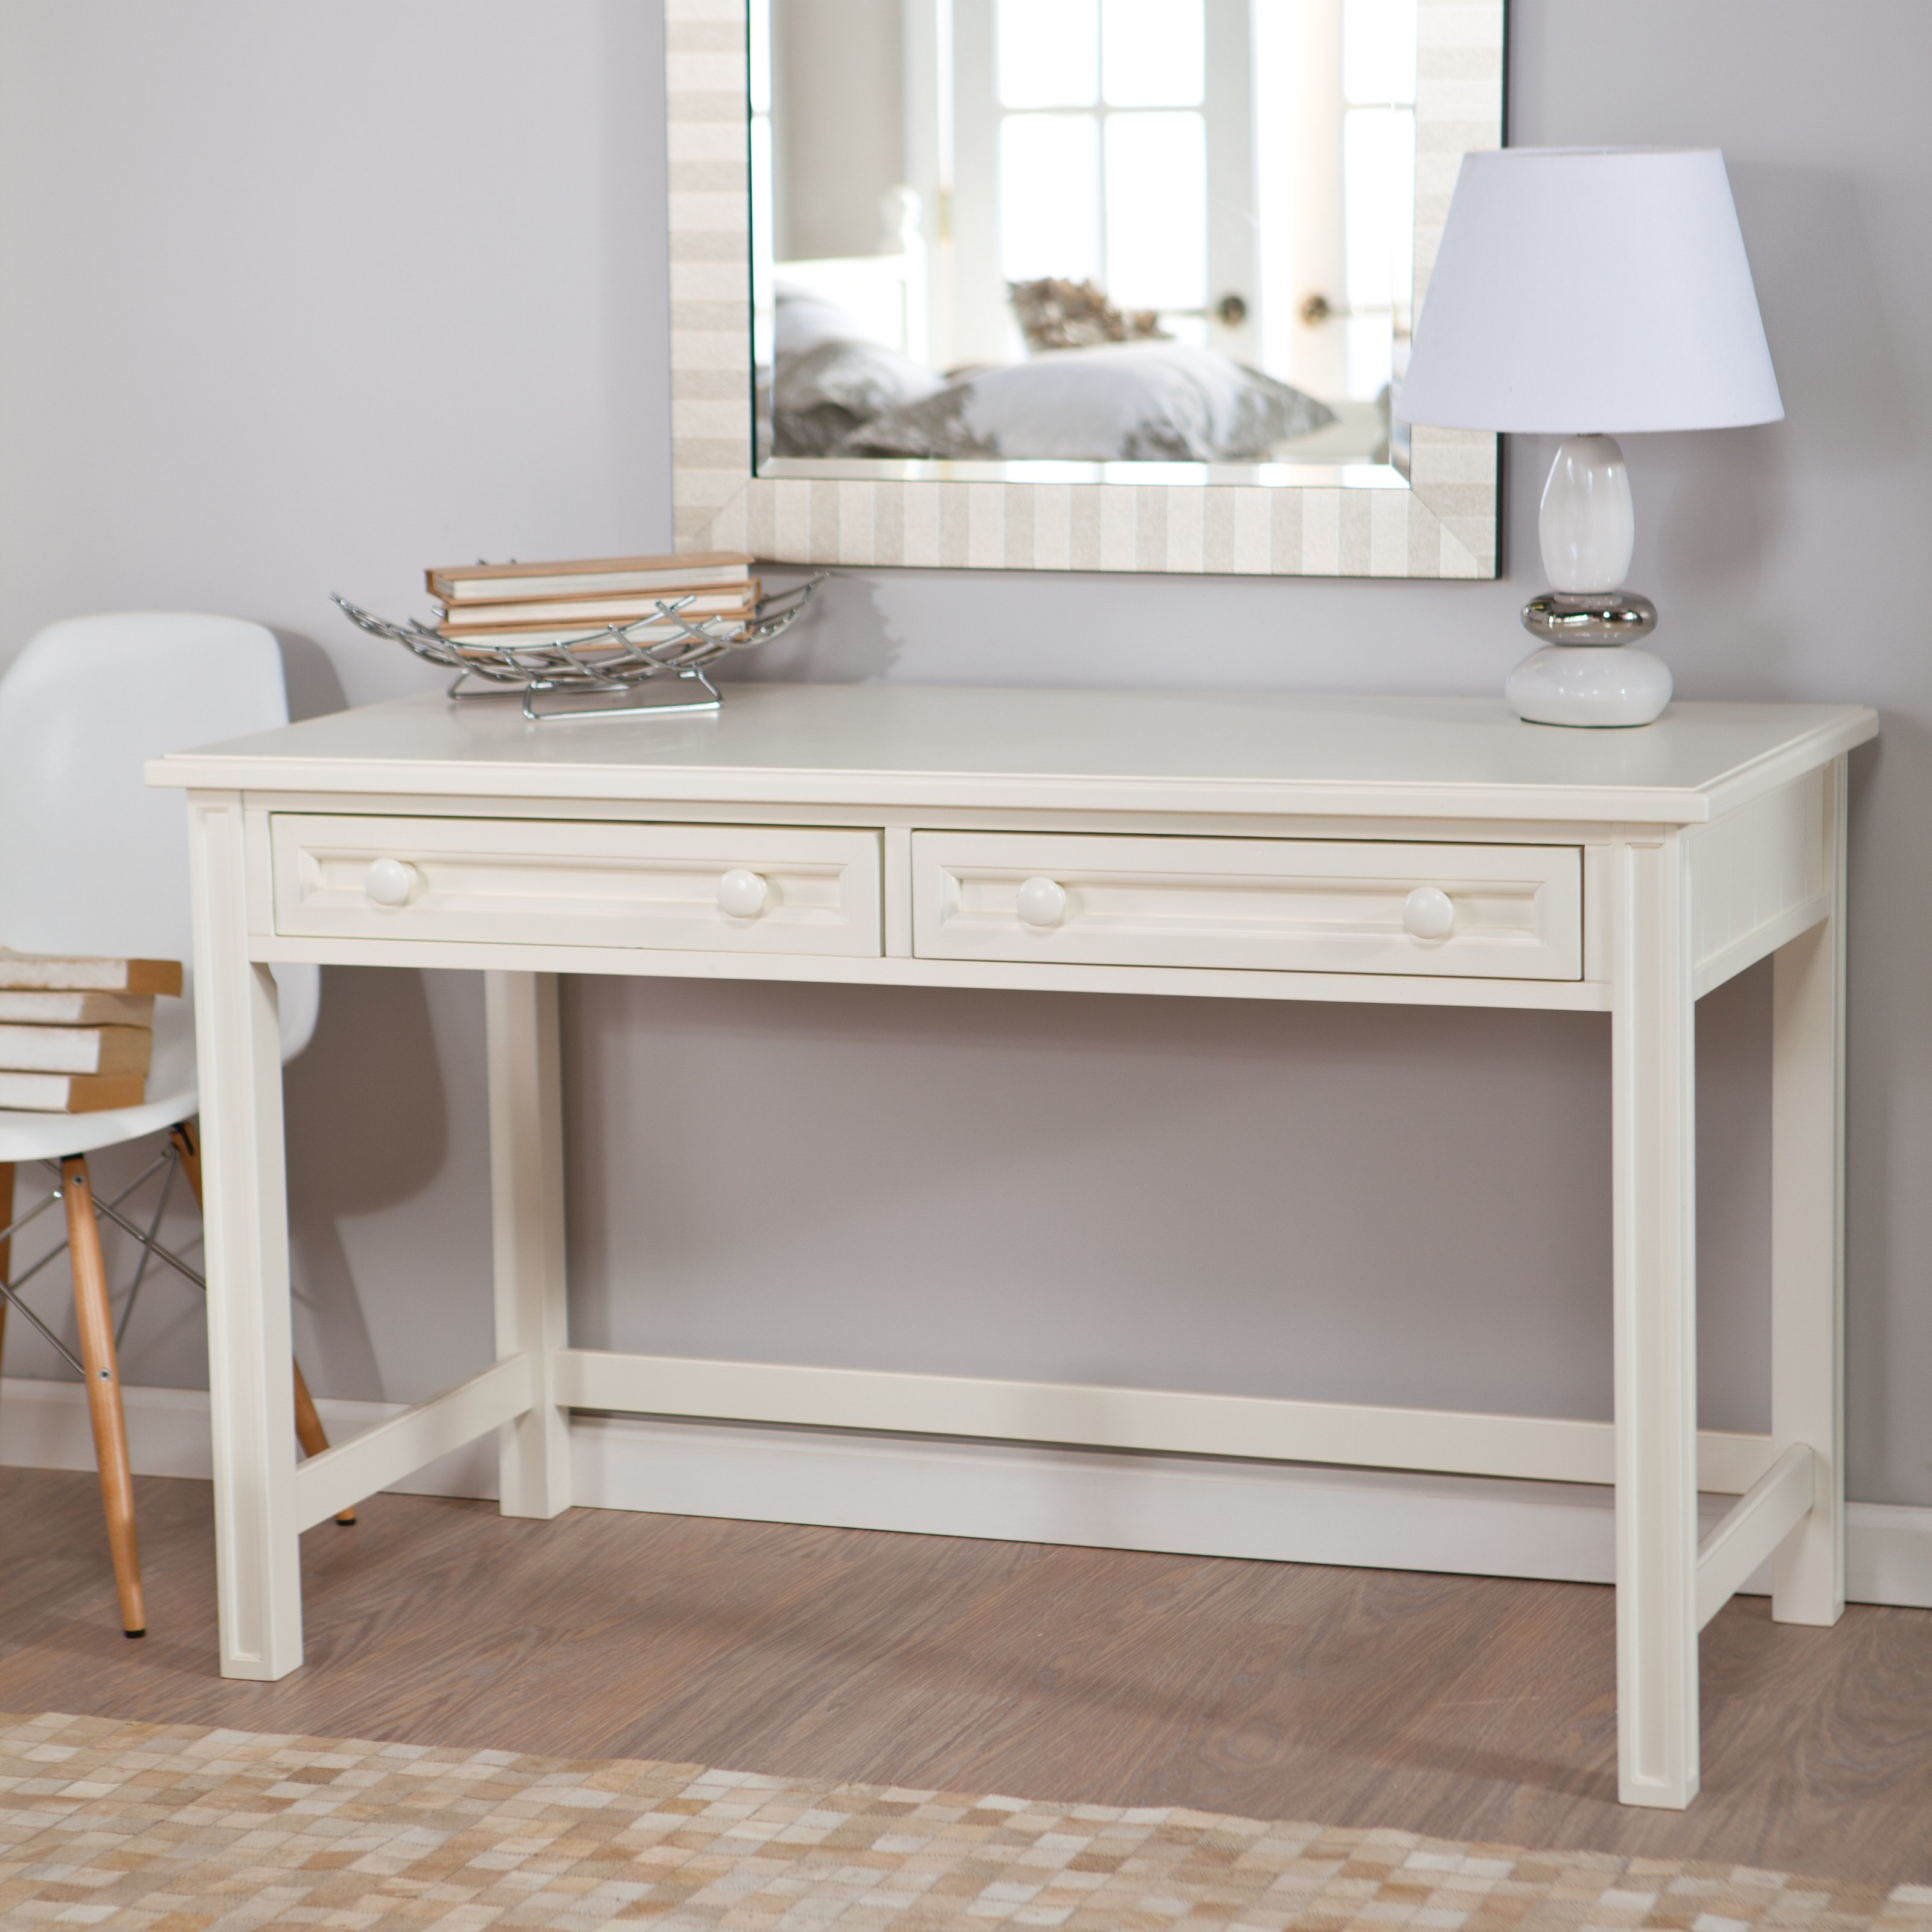 enchanting-design-of-white-polished-wood-vanity-table-ikea-furniture-for-bedroom-with-two-drawers-and-u-shape-stretcher-layout-also-empire-shade-table-lamp-in-front-of-wall-mirror-frames